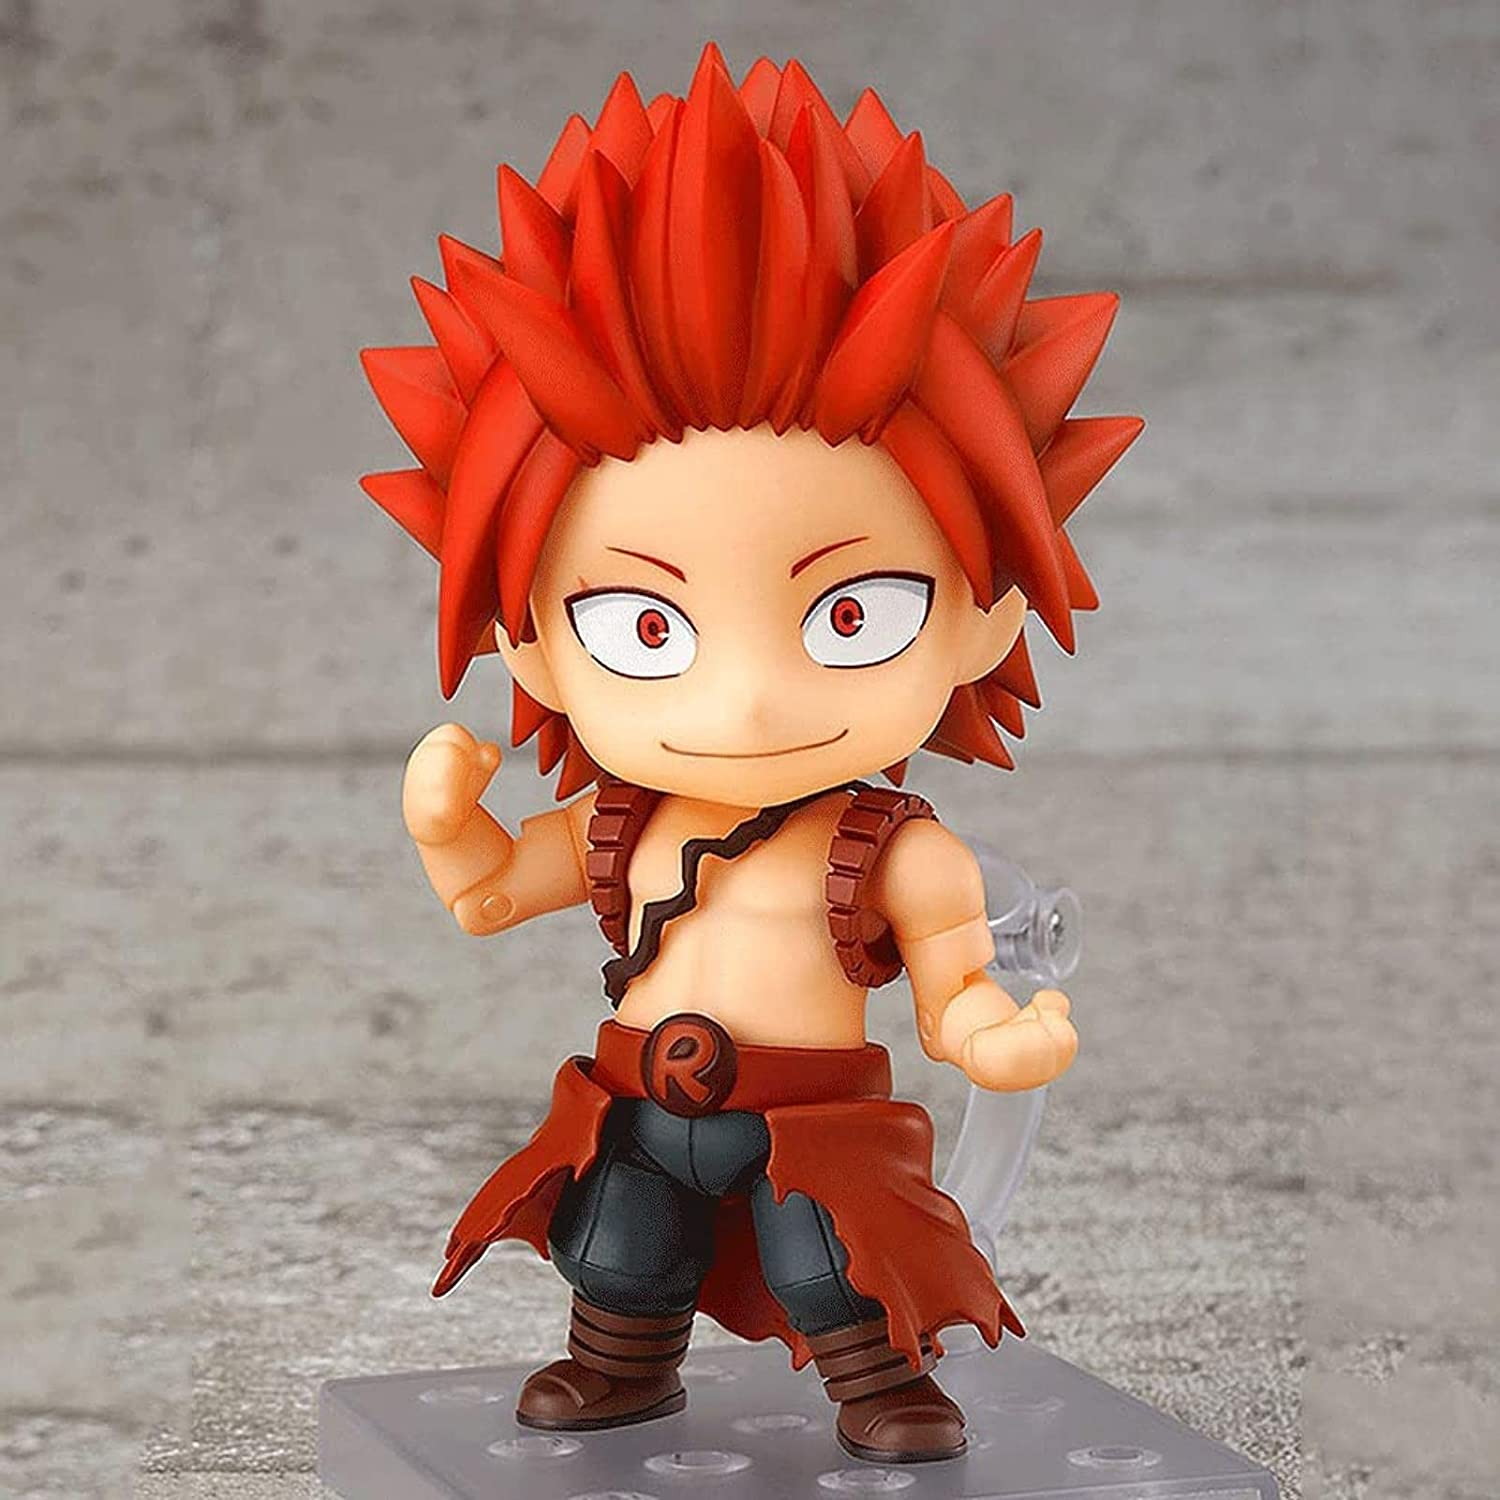 Movable Nendoroid Kirishima Eijiro Figure Direct sale of manufacturer Max 65% OFF is The from Th